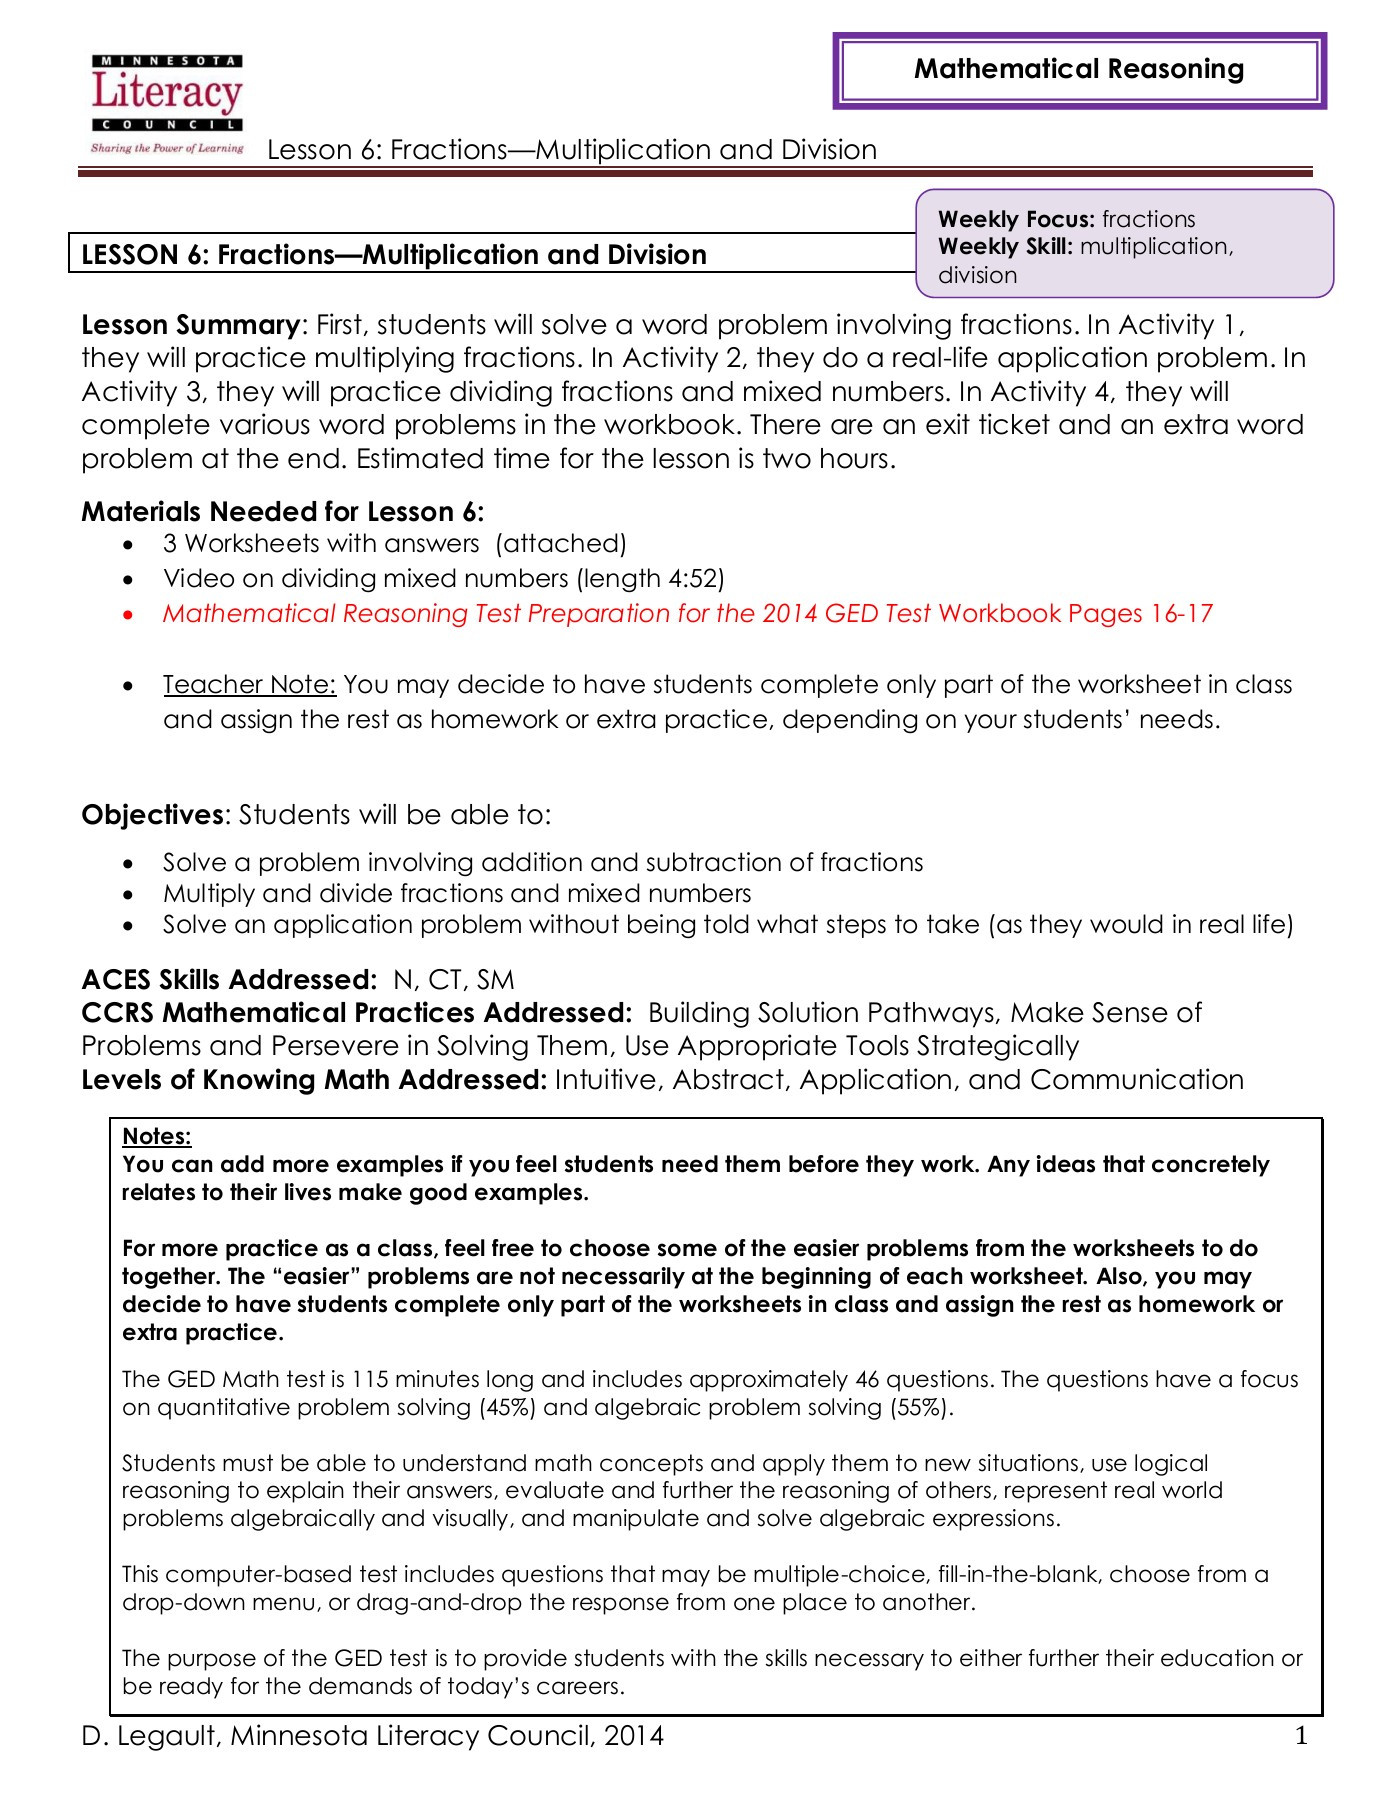 Real World Math Problems Worksheets Lesson 6 Fractions Multiplication and Division Pages 1 12